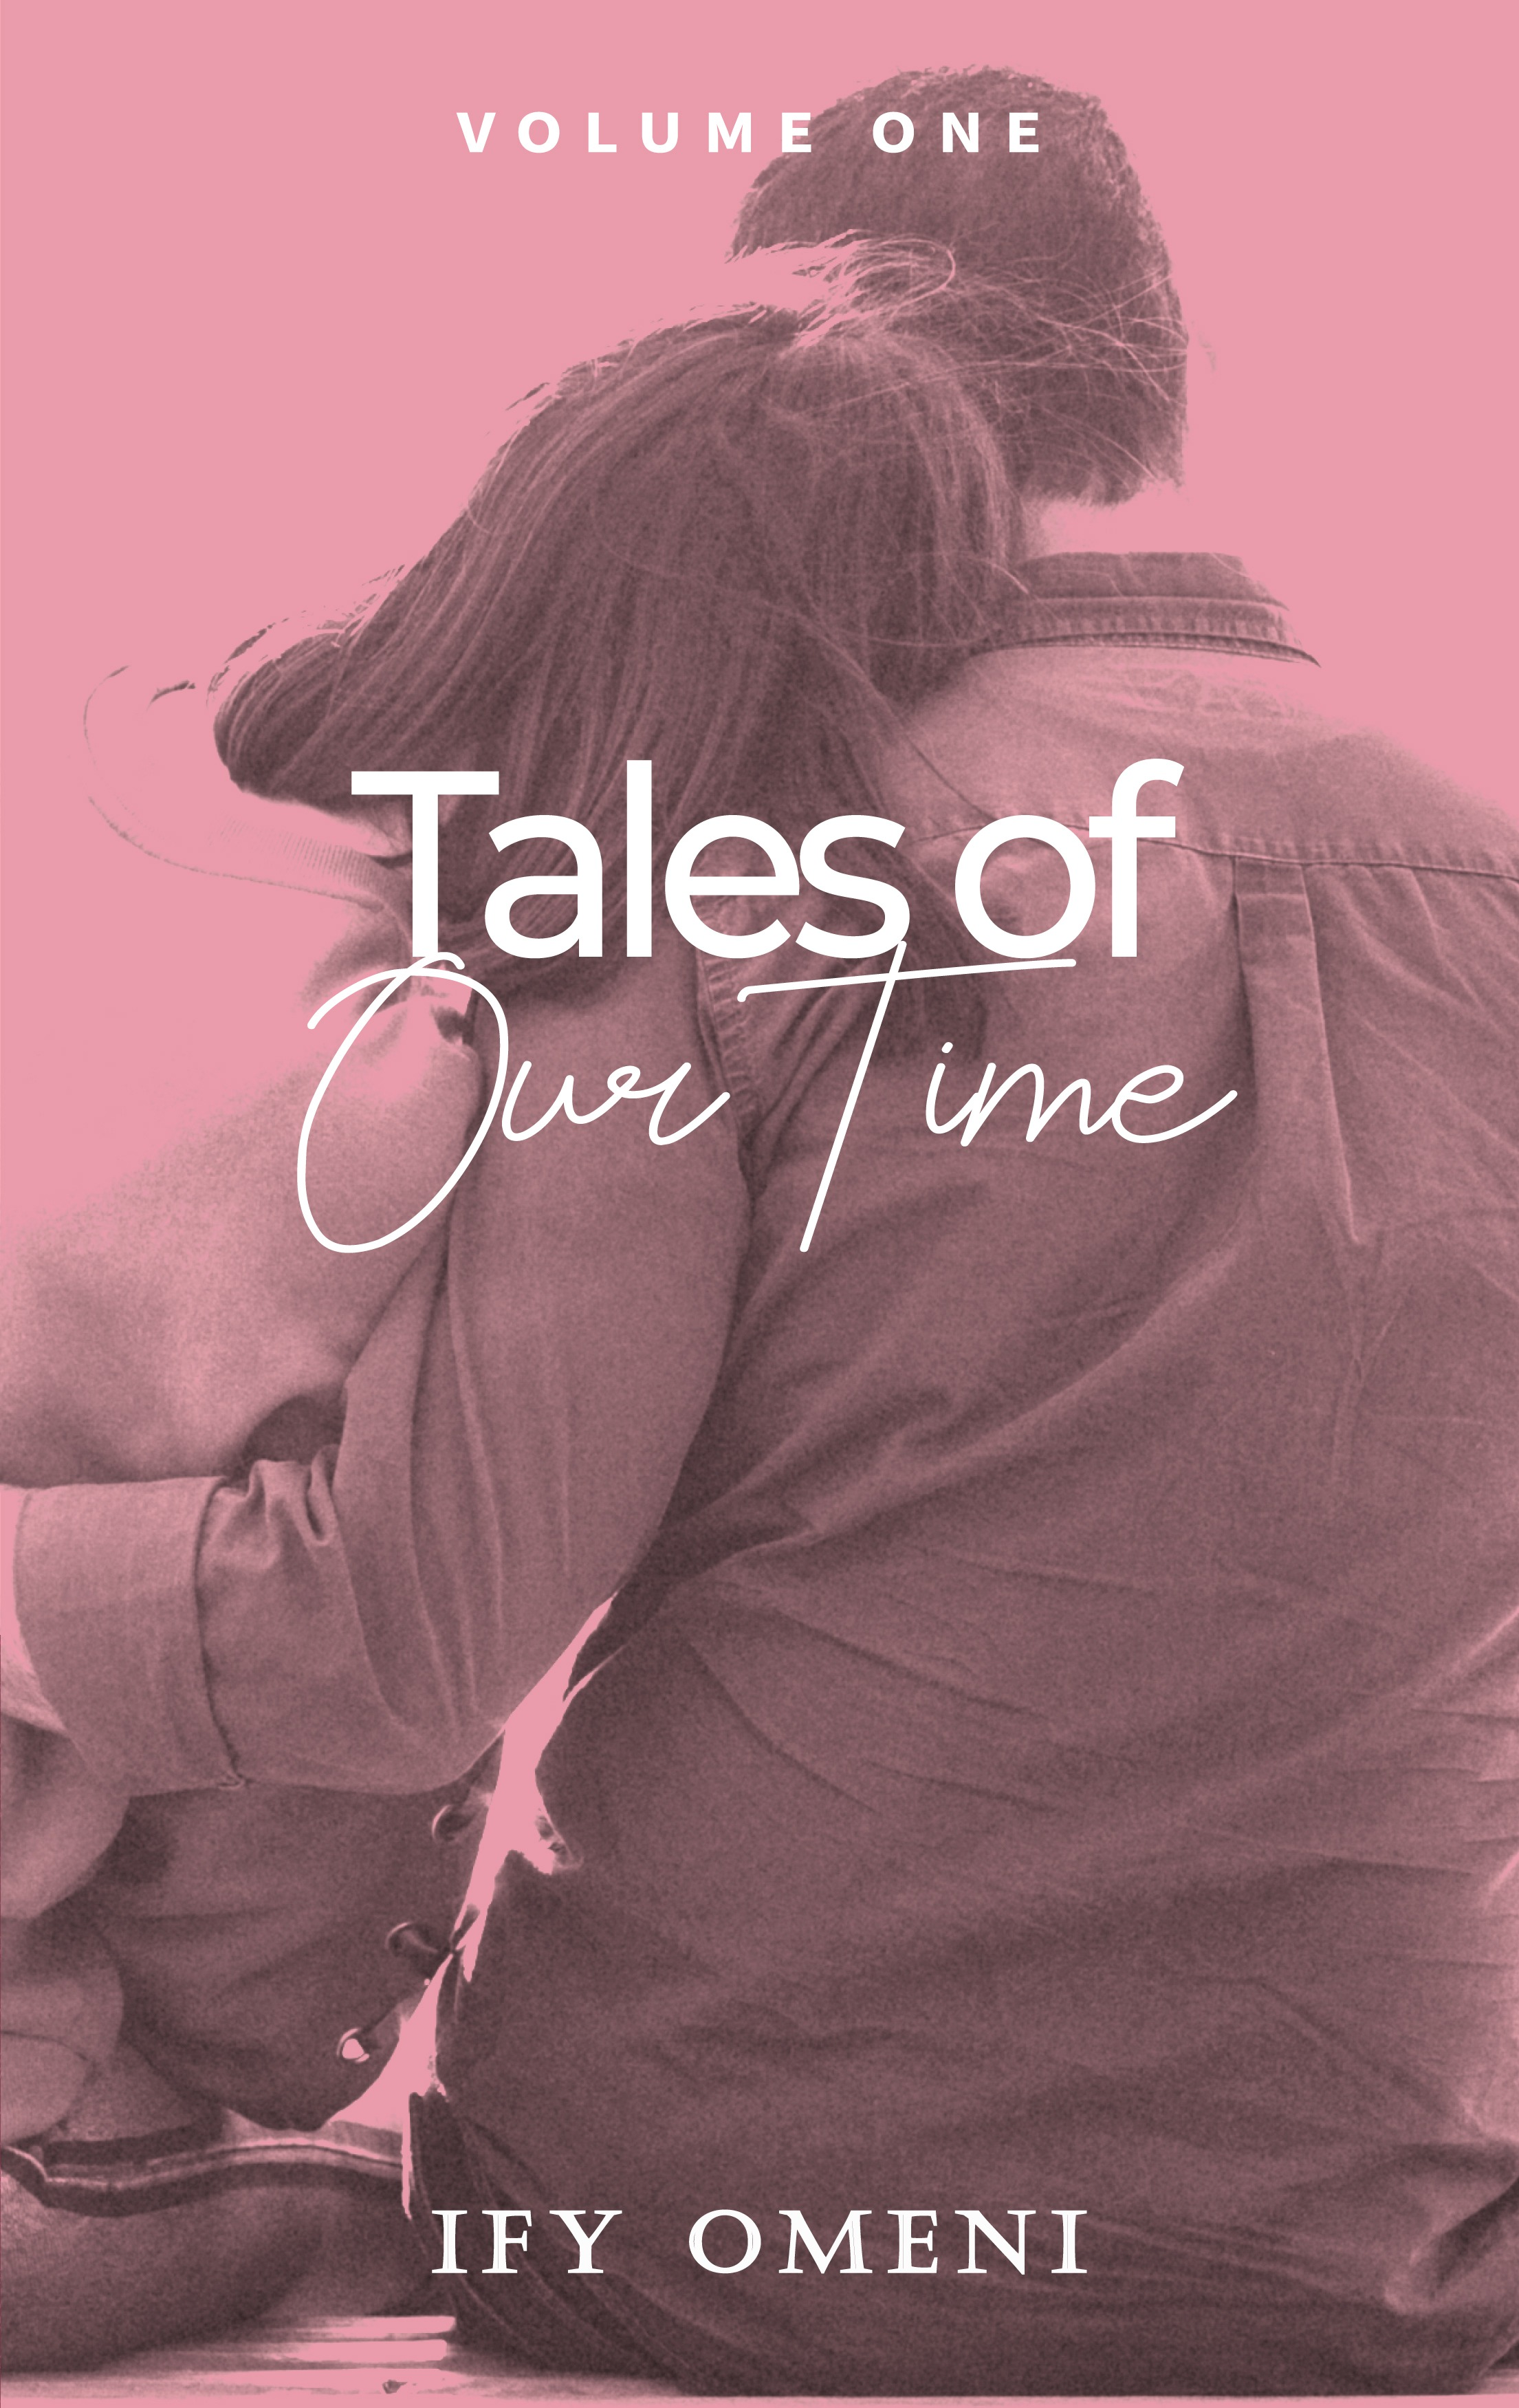 Tales of Our Time Volume One